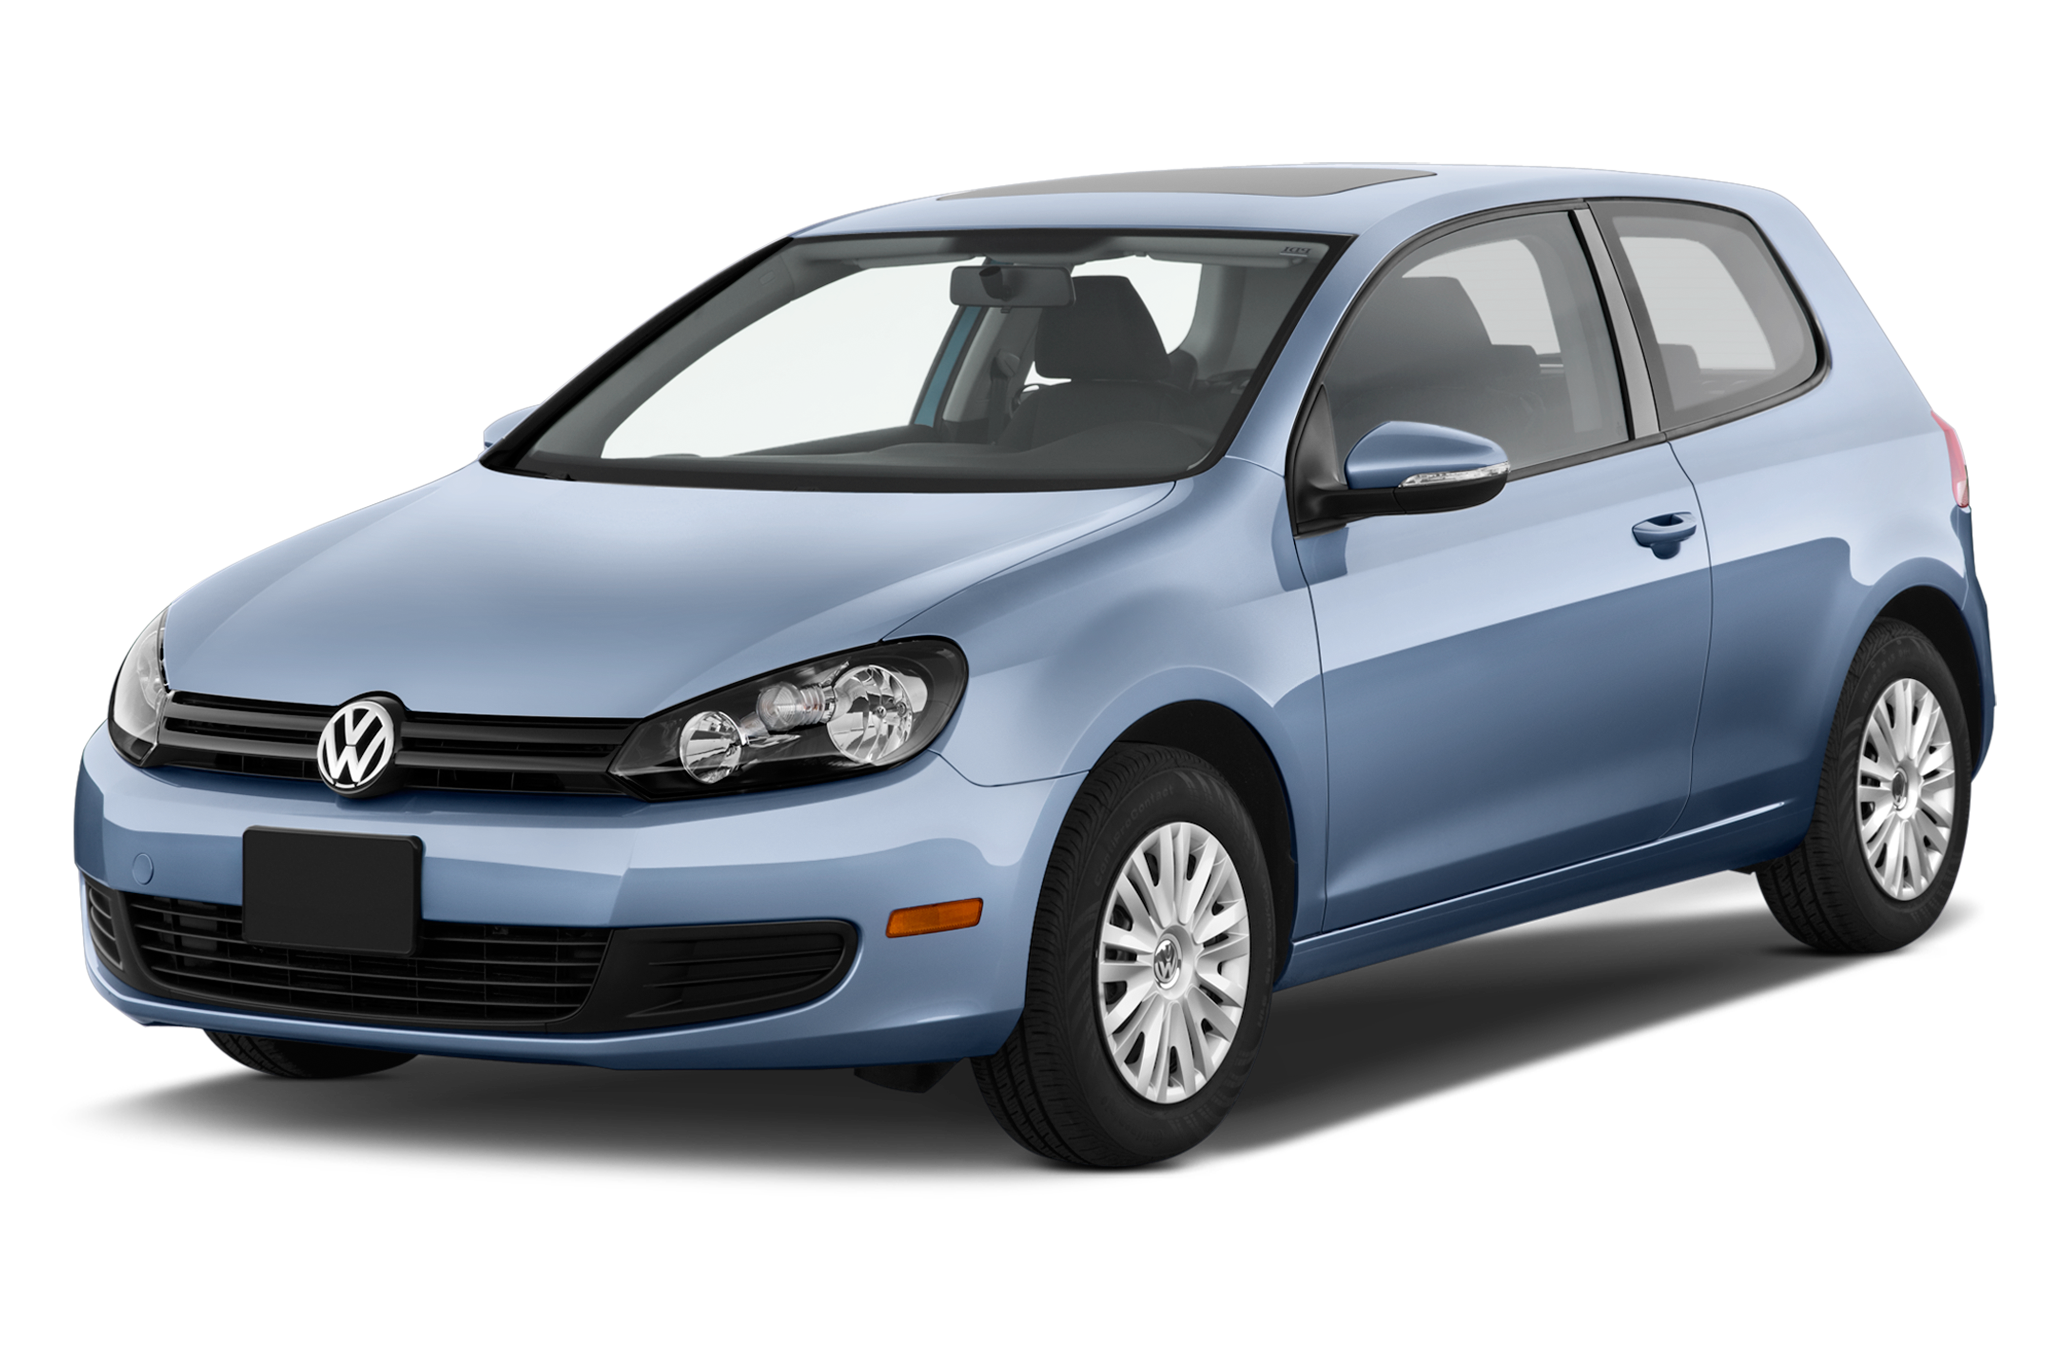 2010 volkswagen golf tdi volkswagen diesel hatchback. Black Bedroom Furniture Sets. Home Design Ideas